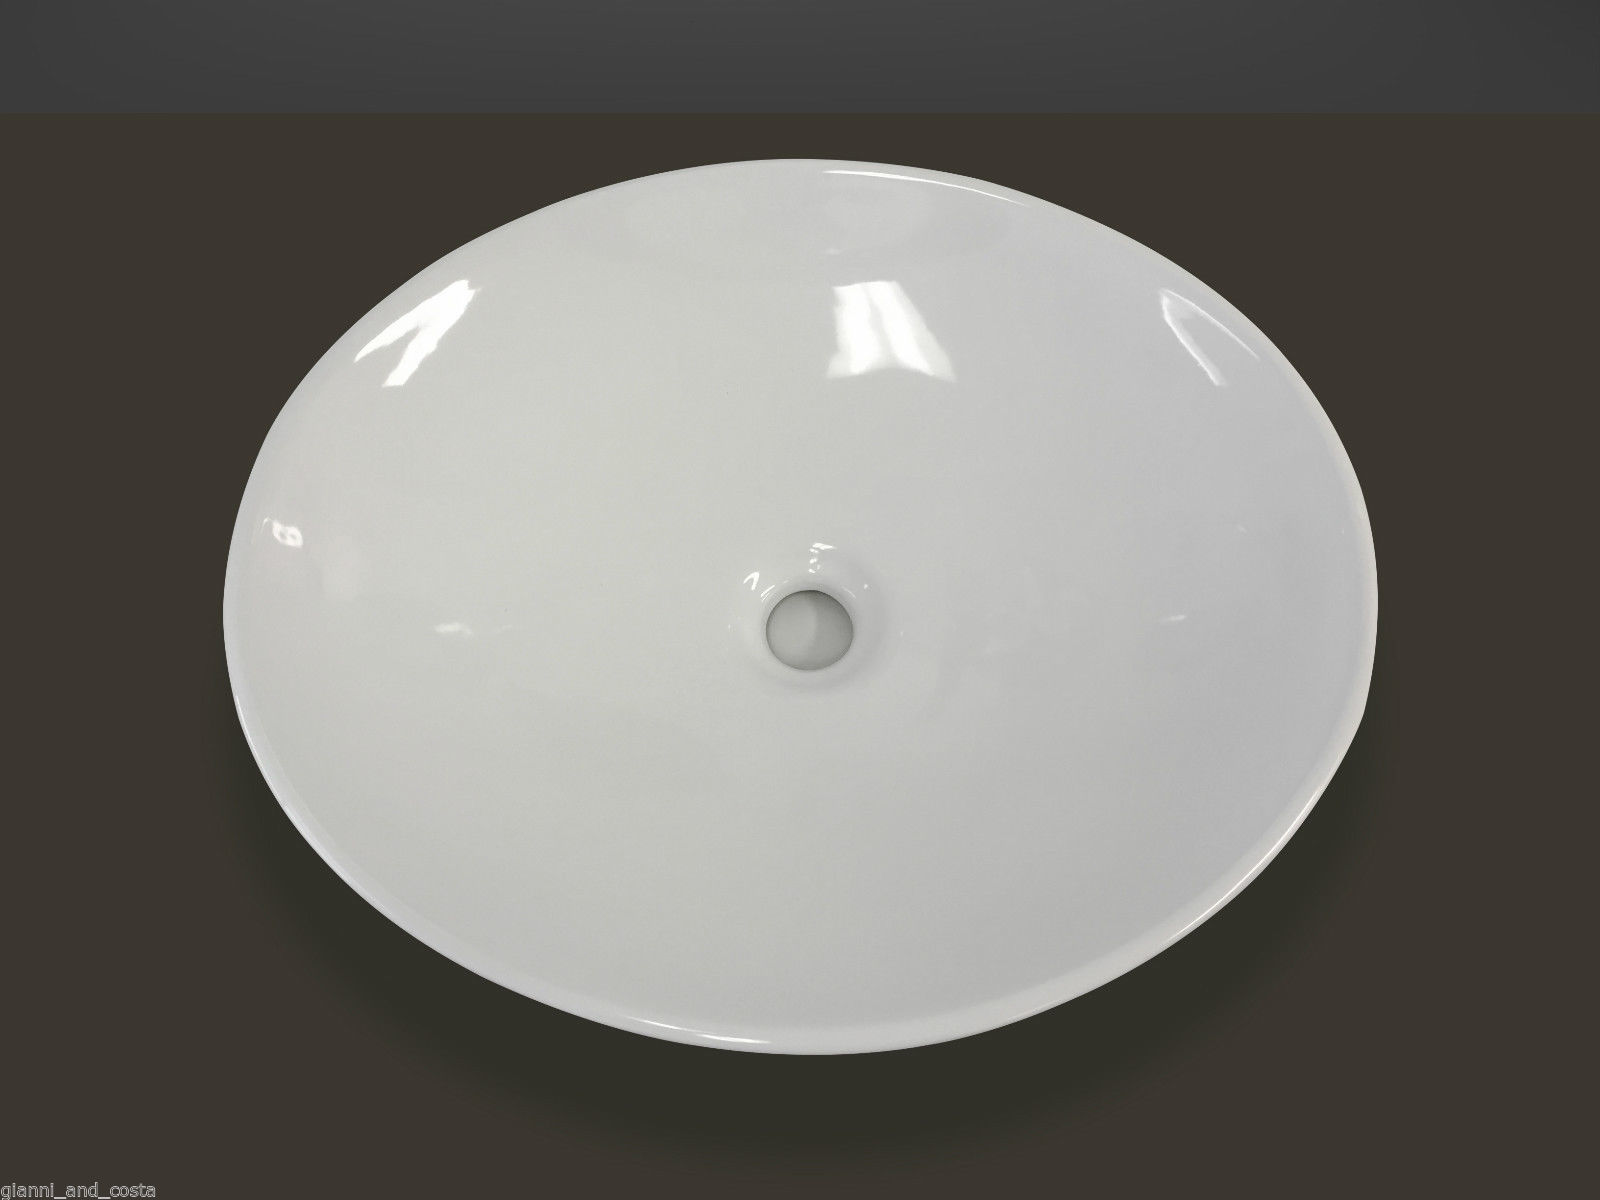 CERAMIC OVAL ABOVE COUNTER TOP BASIN FOR VANITY INCLUDES POP - UP WASTE